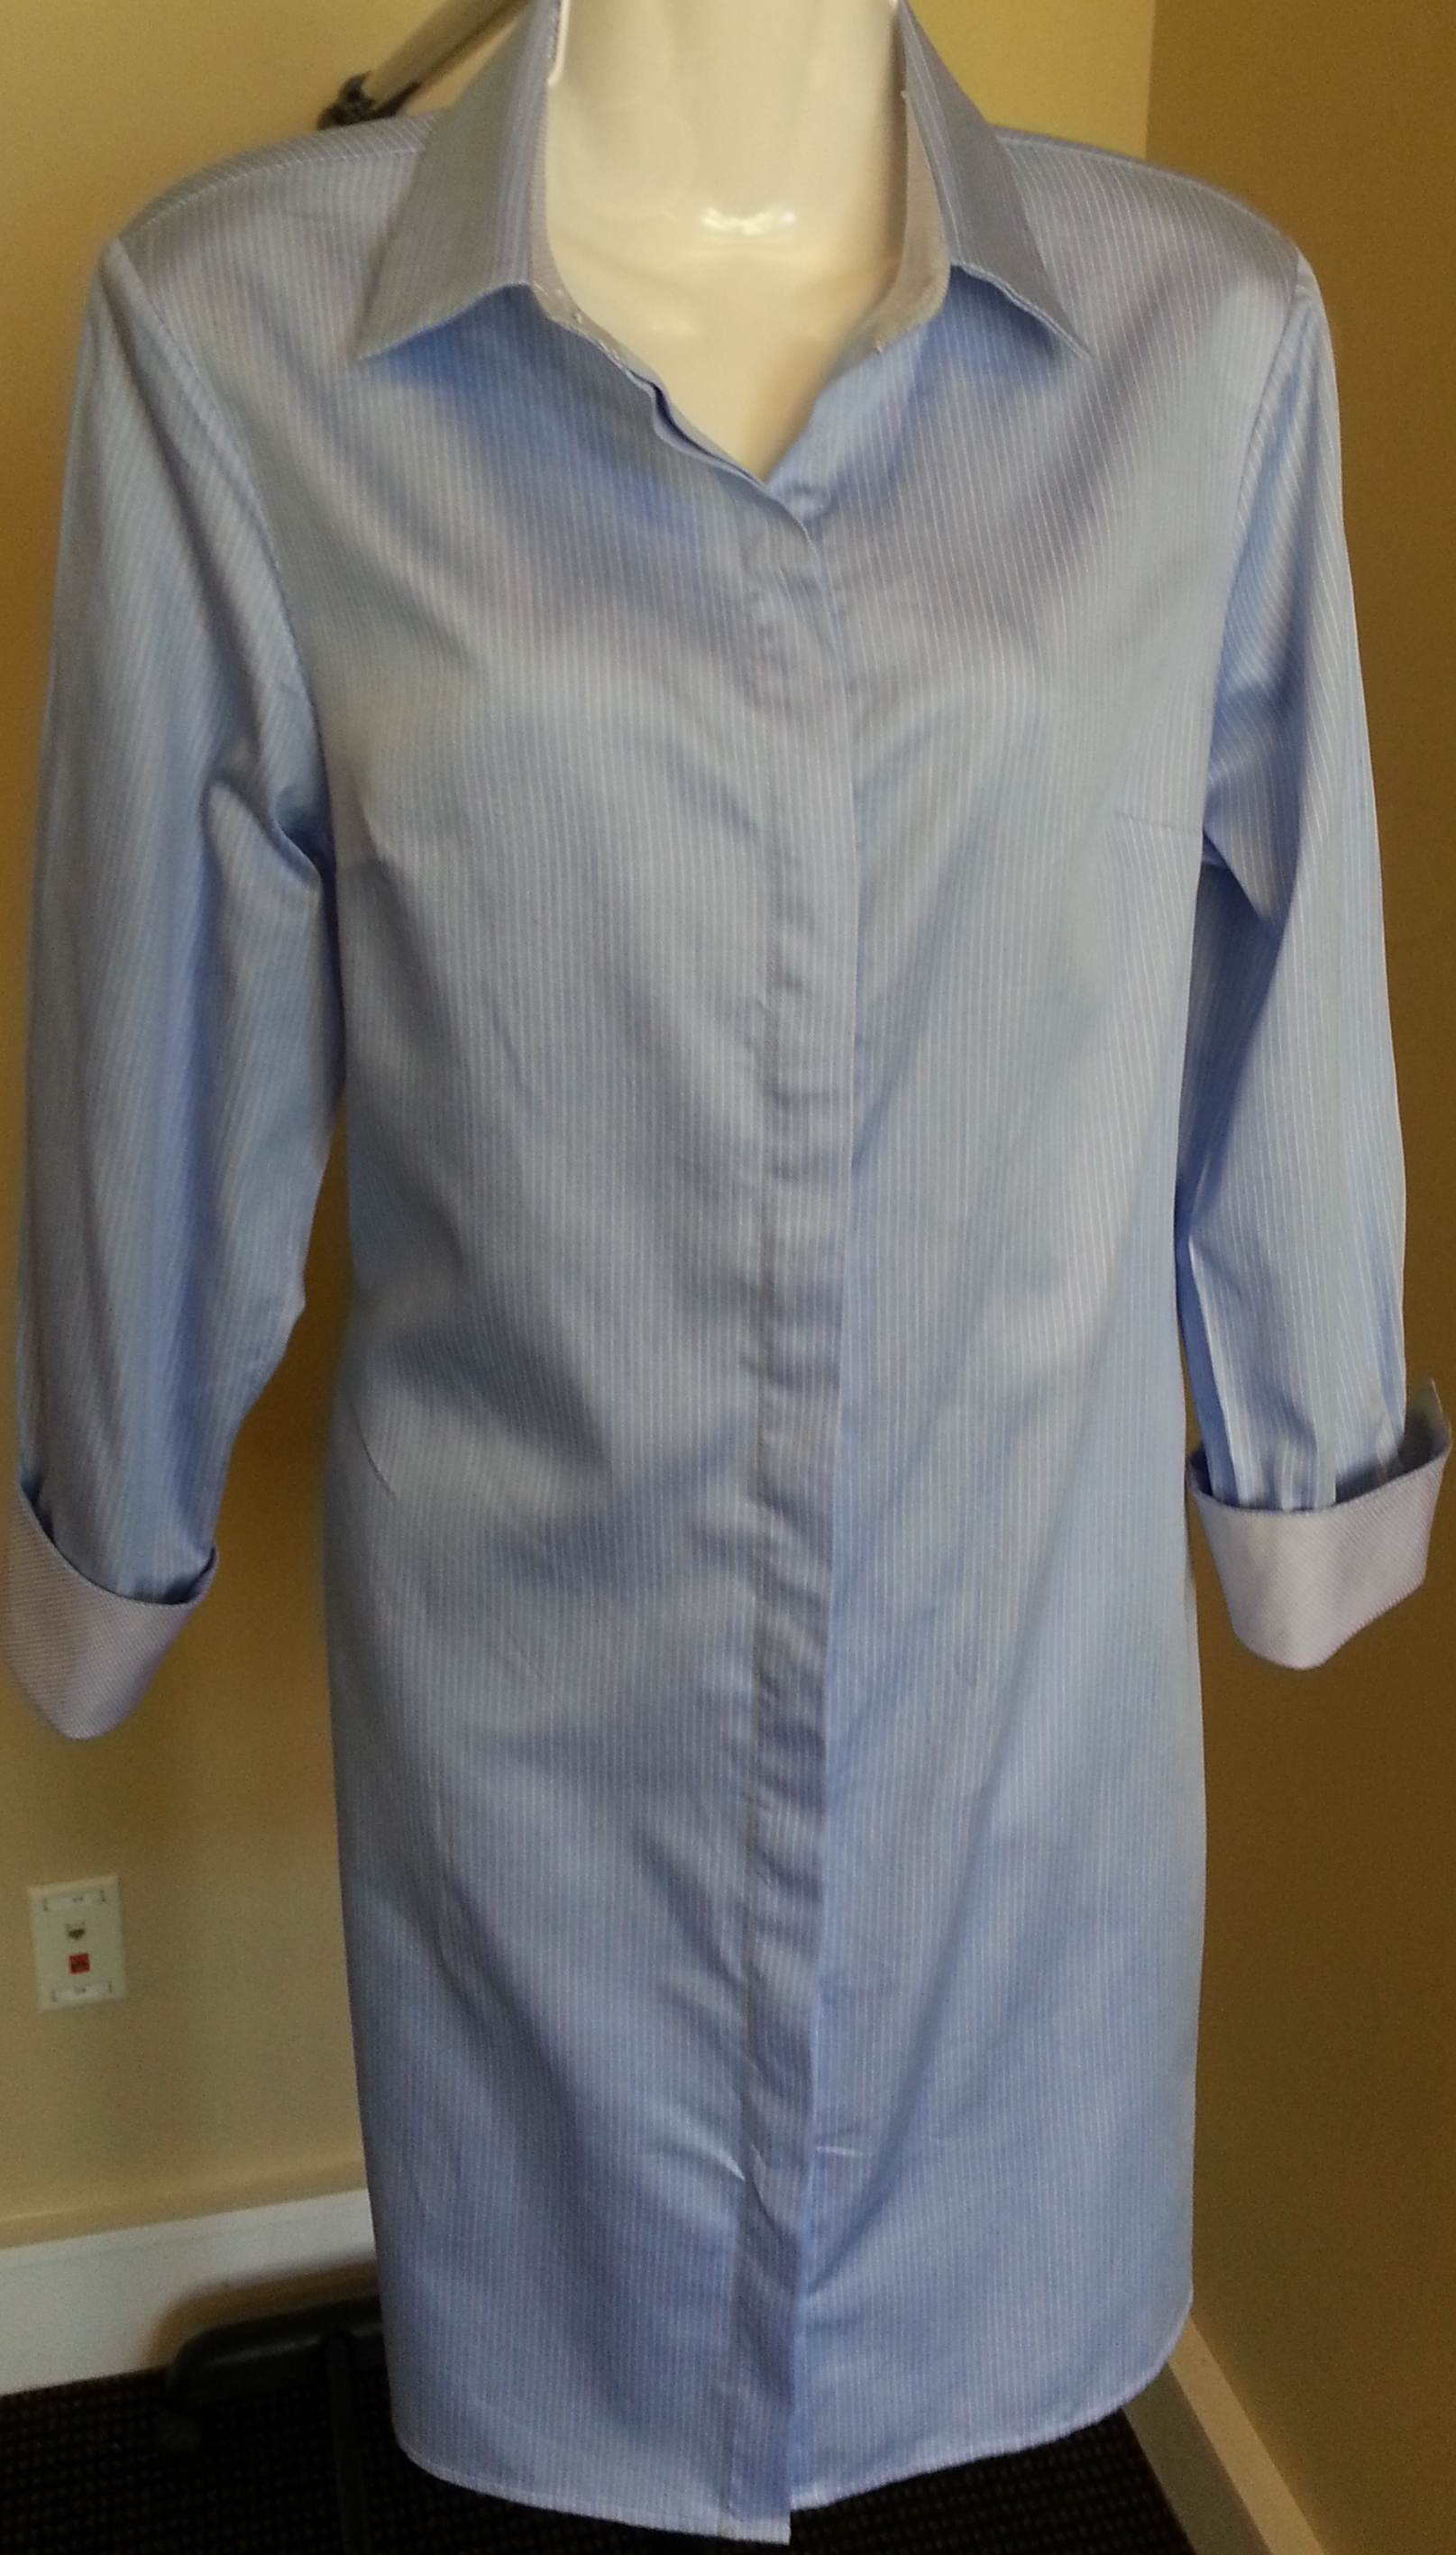 48a8ad0077 3/4 Sleeve Shirtdress in Blue with White Pencil Stripes on Storenvy